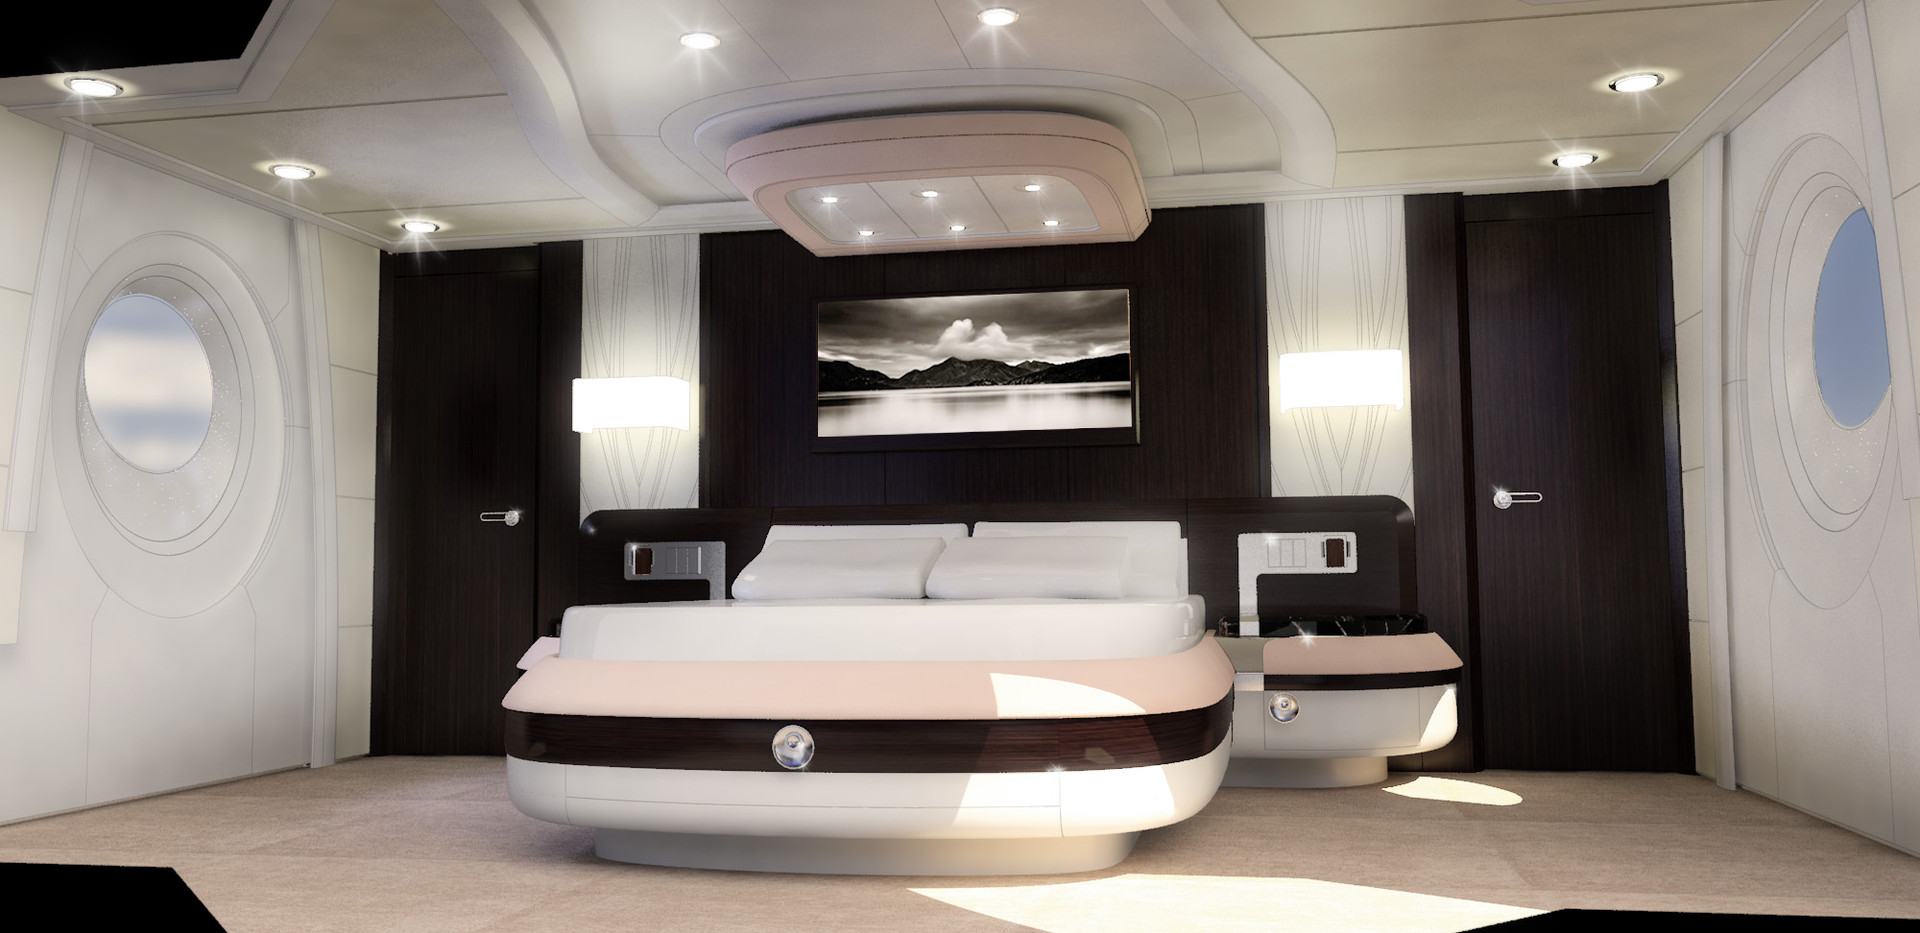 Master Suite Aft March 30 2011.jpg